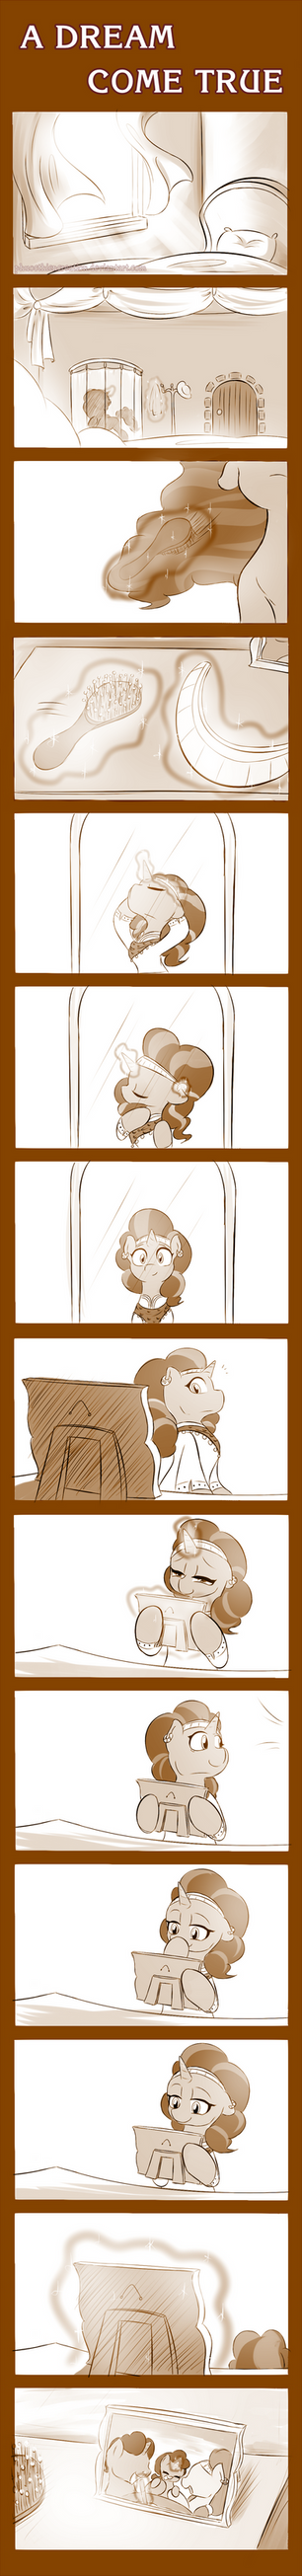 [SS6 E12] A dream come true by PhuocThienCreation